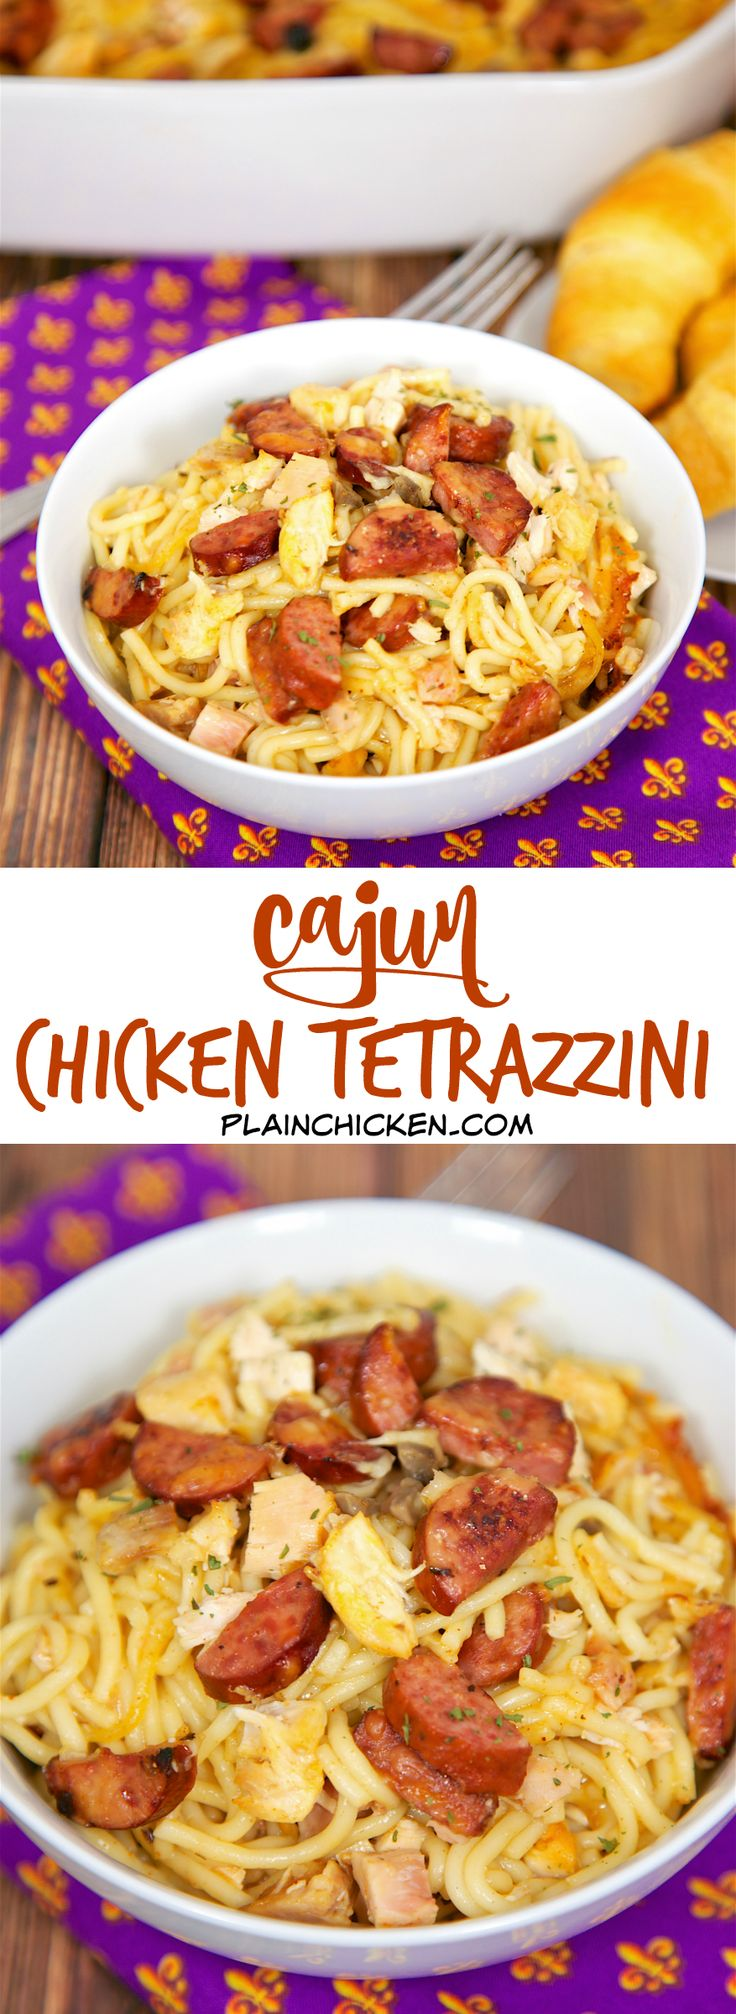 Cajun Chicken Tetrazzini - andouille or smoked sausage, chicken, pasta, cajun seasoning, cream of chicken, cream of mushroom, chicken broth and parmesan cheese. SO good! We ate this 2 days in a row. Can make ahead and refrigerate or freeze for later. We could not get enough of this casserole!